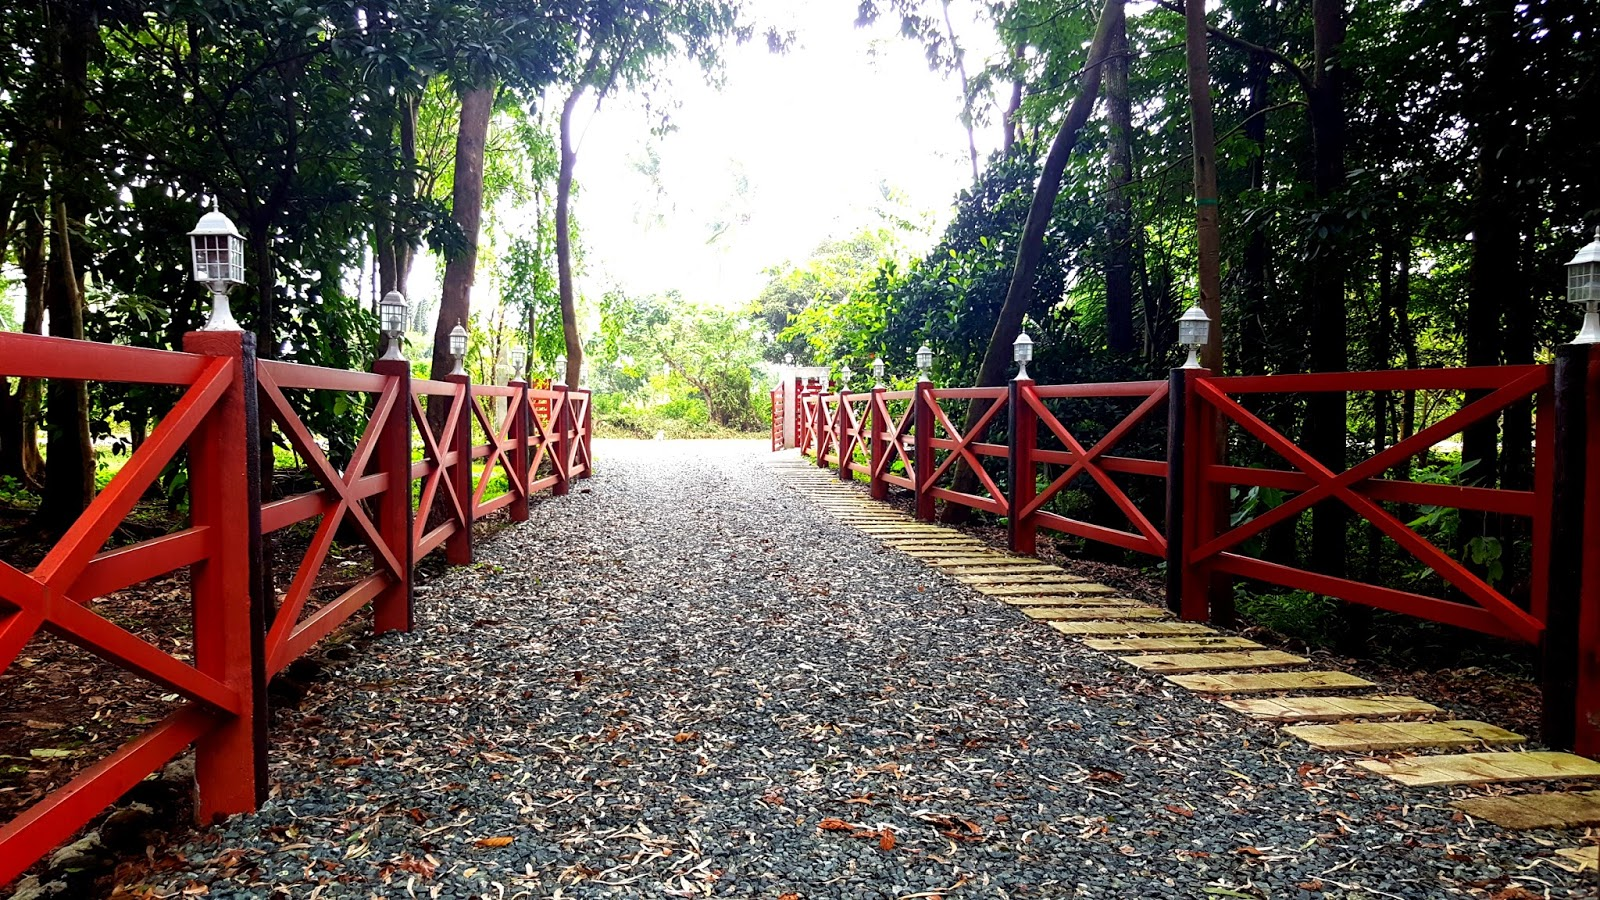 It Is A Favorite Spot For Prenup Pictorials No Need Too Much Props Since The Fence Itself Lamps Gravel And Withered Leaves Can Be Considered